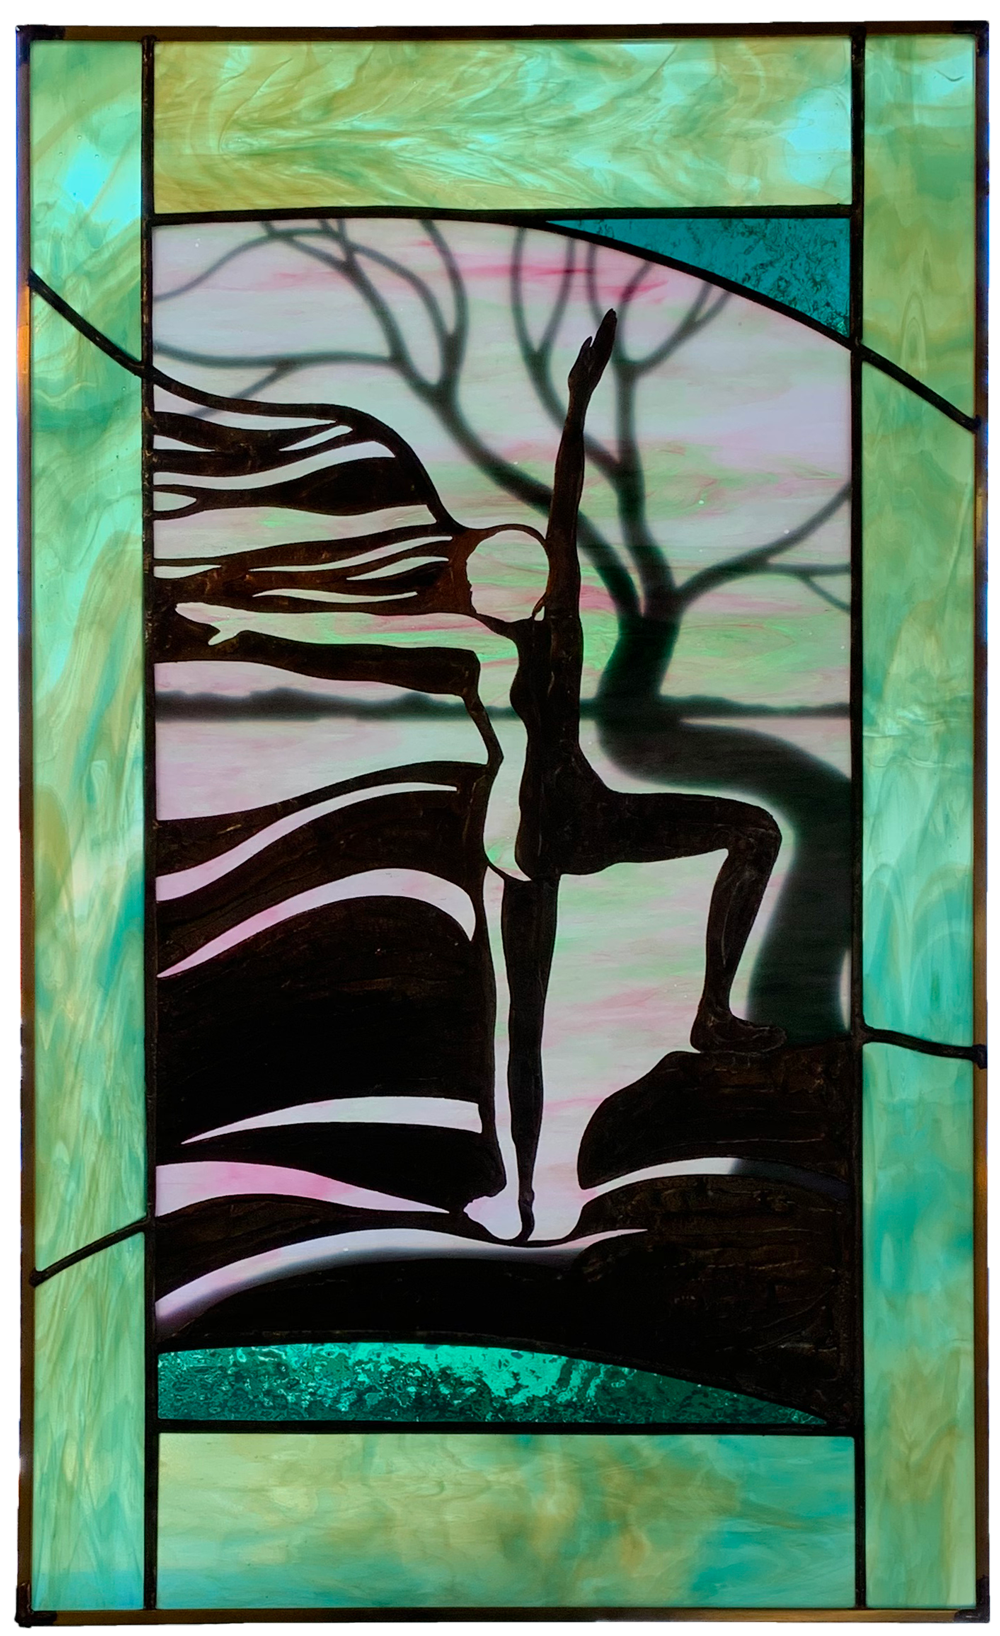 stained glass of figure in yoga pose by a tree | © Anne Ryan Miller